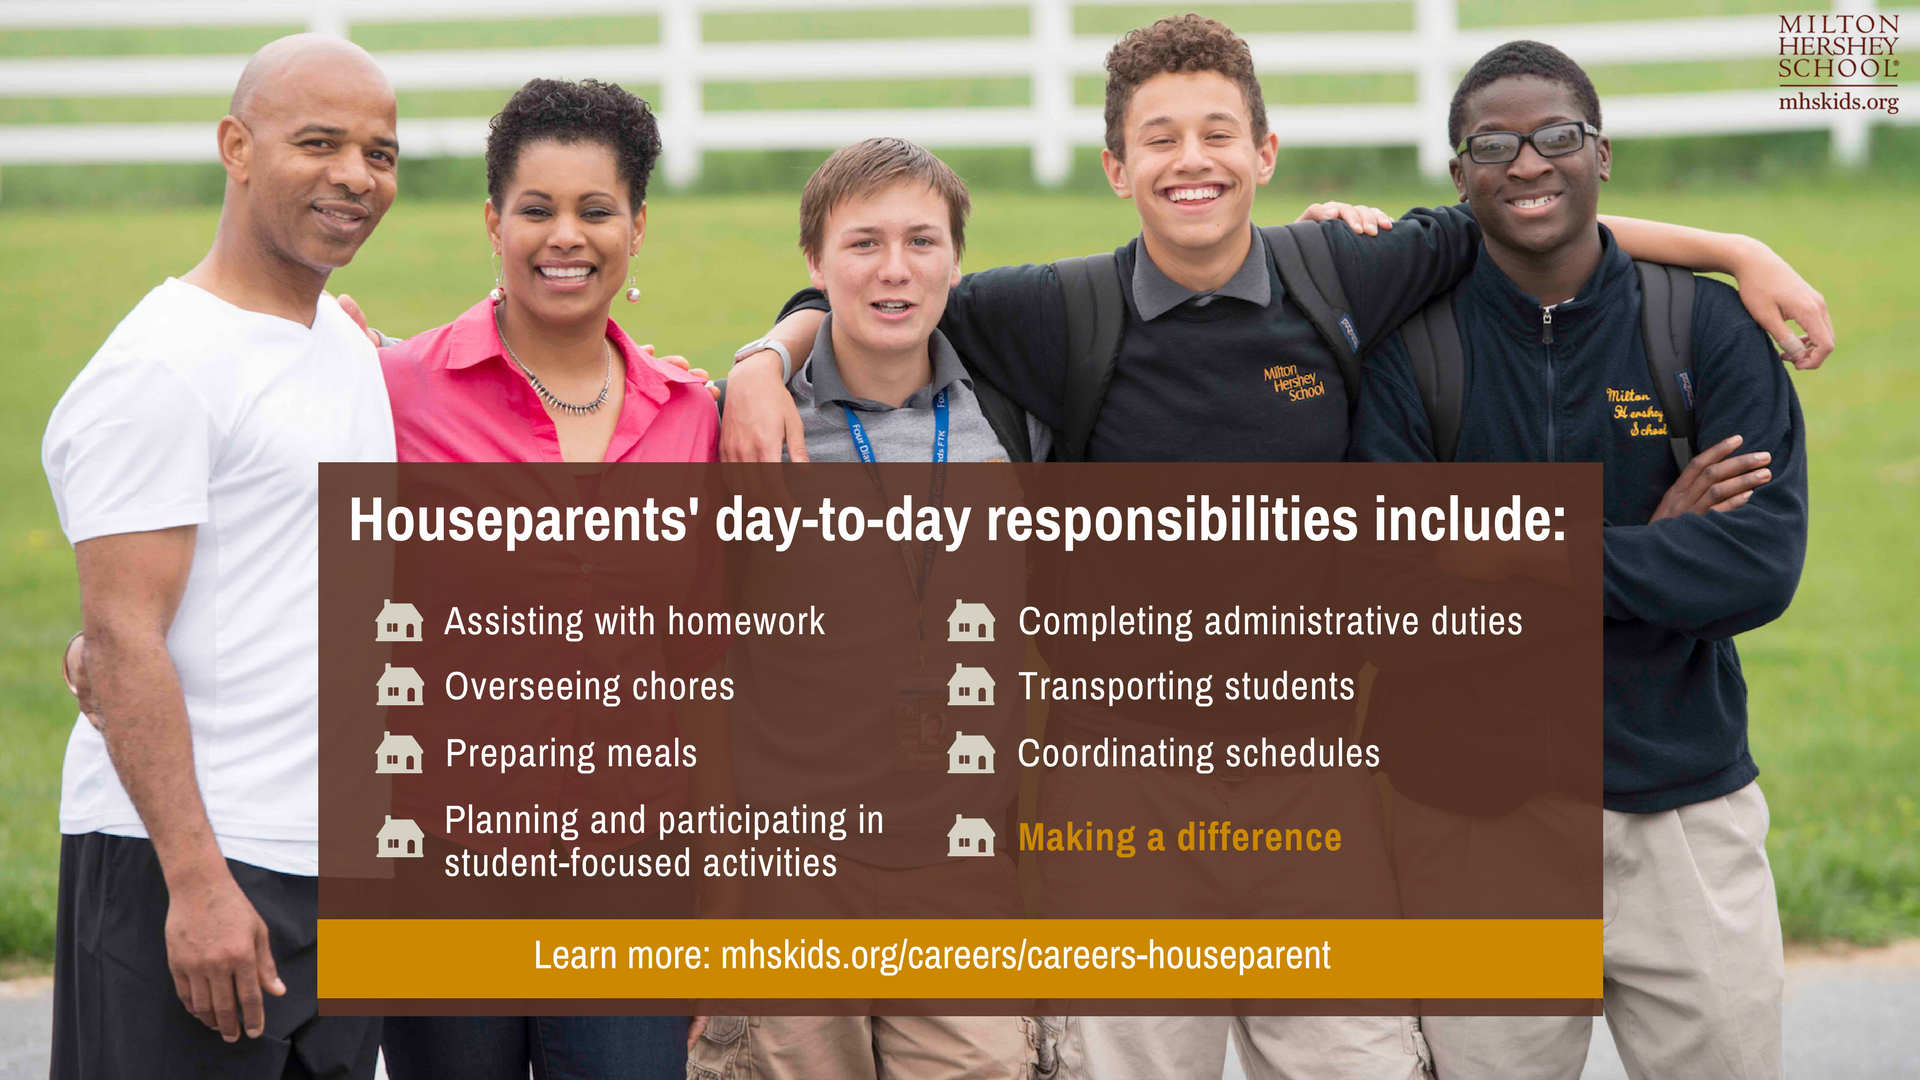 Houseparents at Milton Hershey School significantly impact the lives of our students. Learn more about this rewarding career.